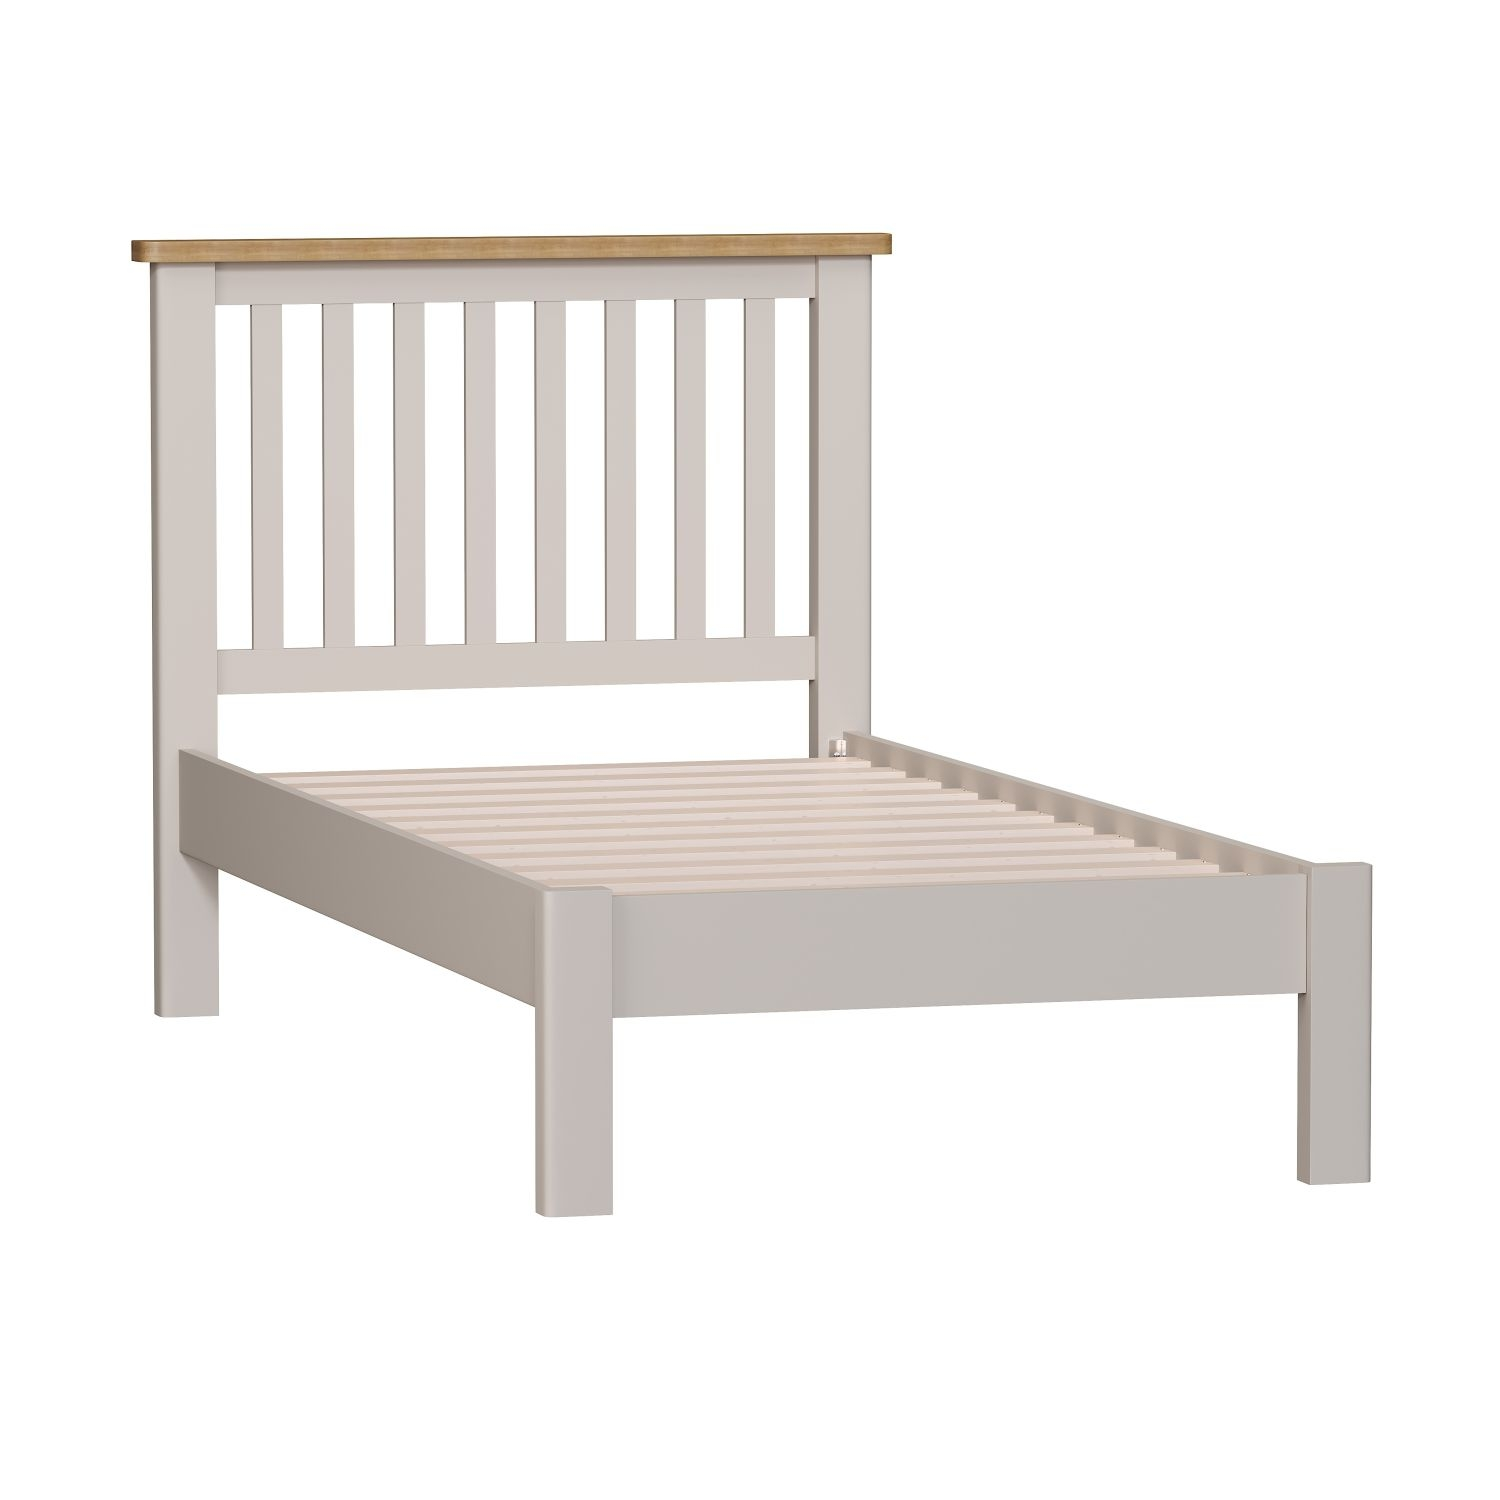 Image of Casa Portland Bed Frame, Single